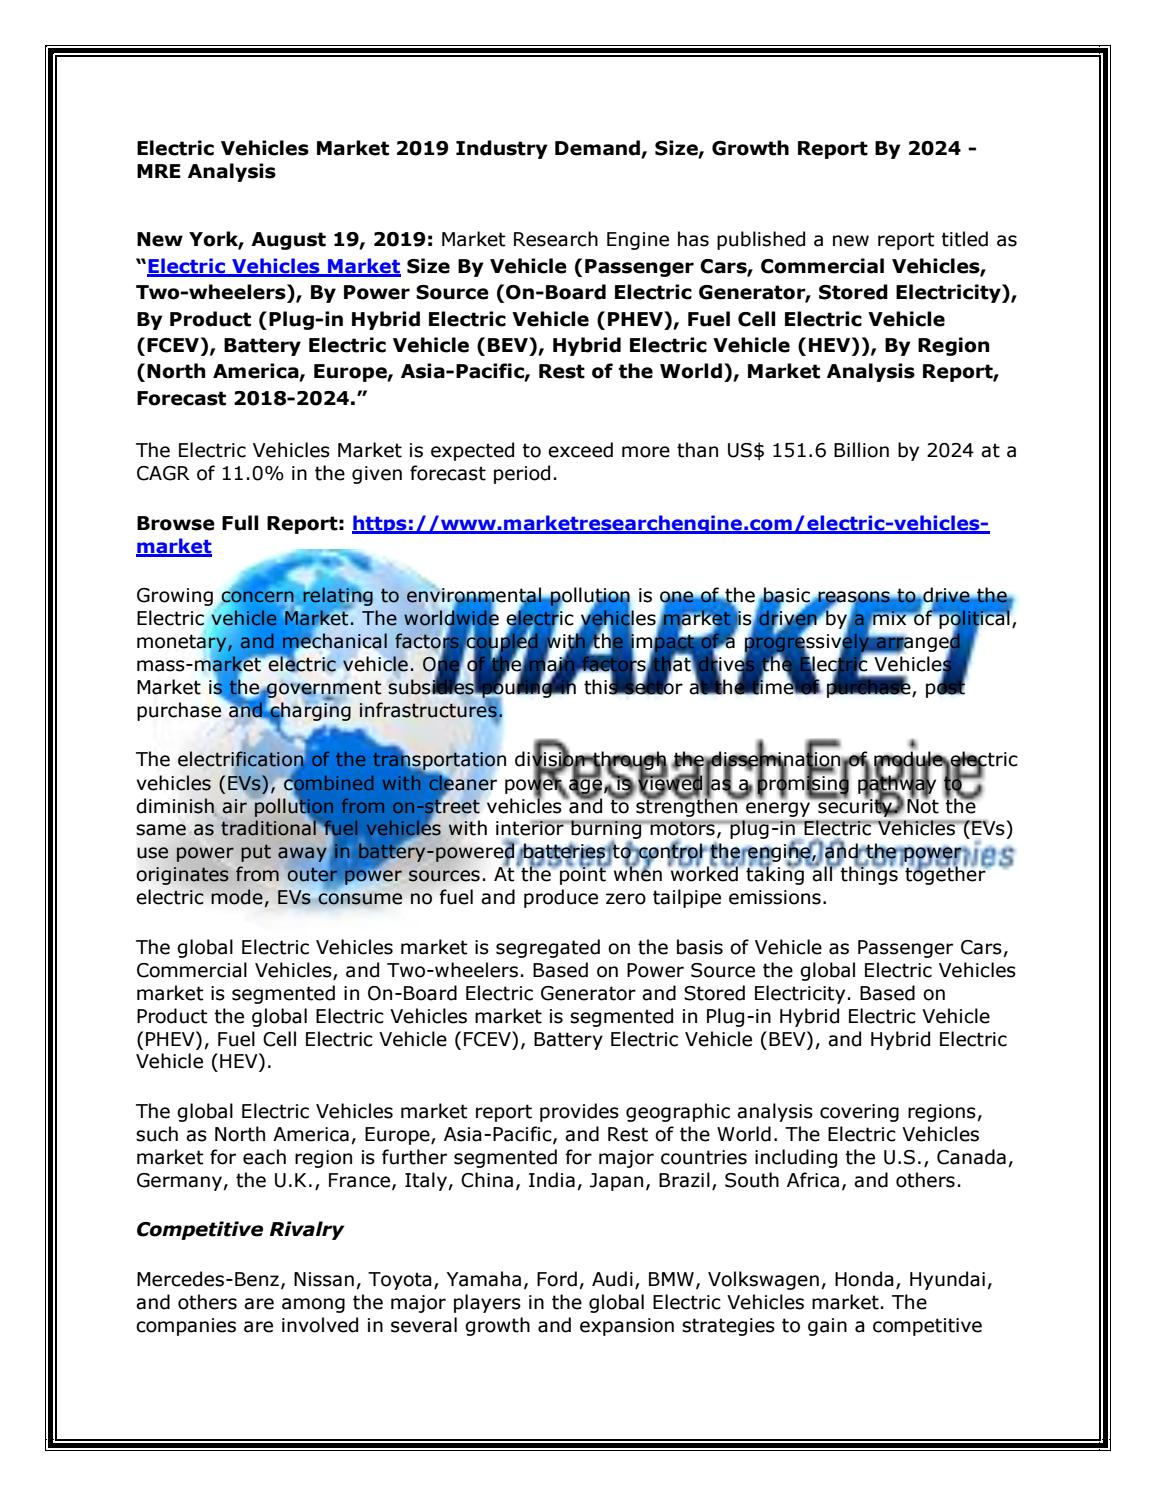 Electric Vehicles Market 2019 Industry Demand Size Growth Report By 2024 Mre Analysis By Serena Thomson Issuu